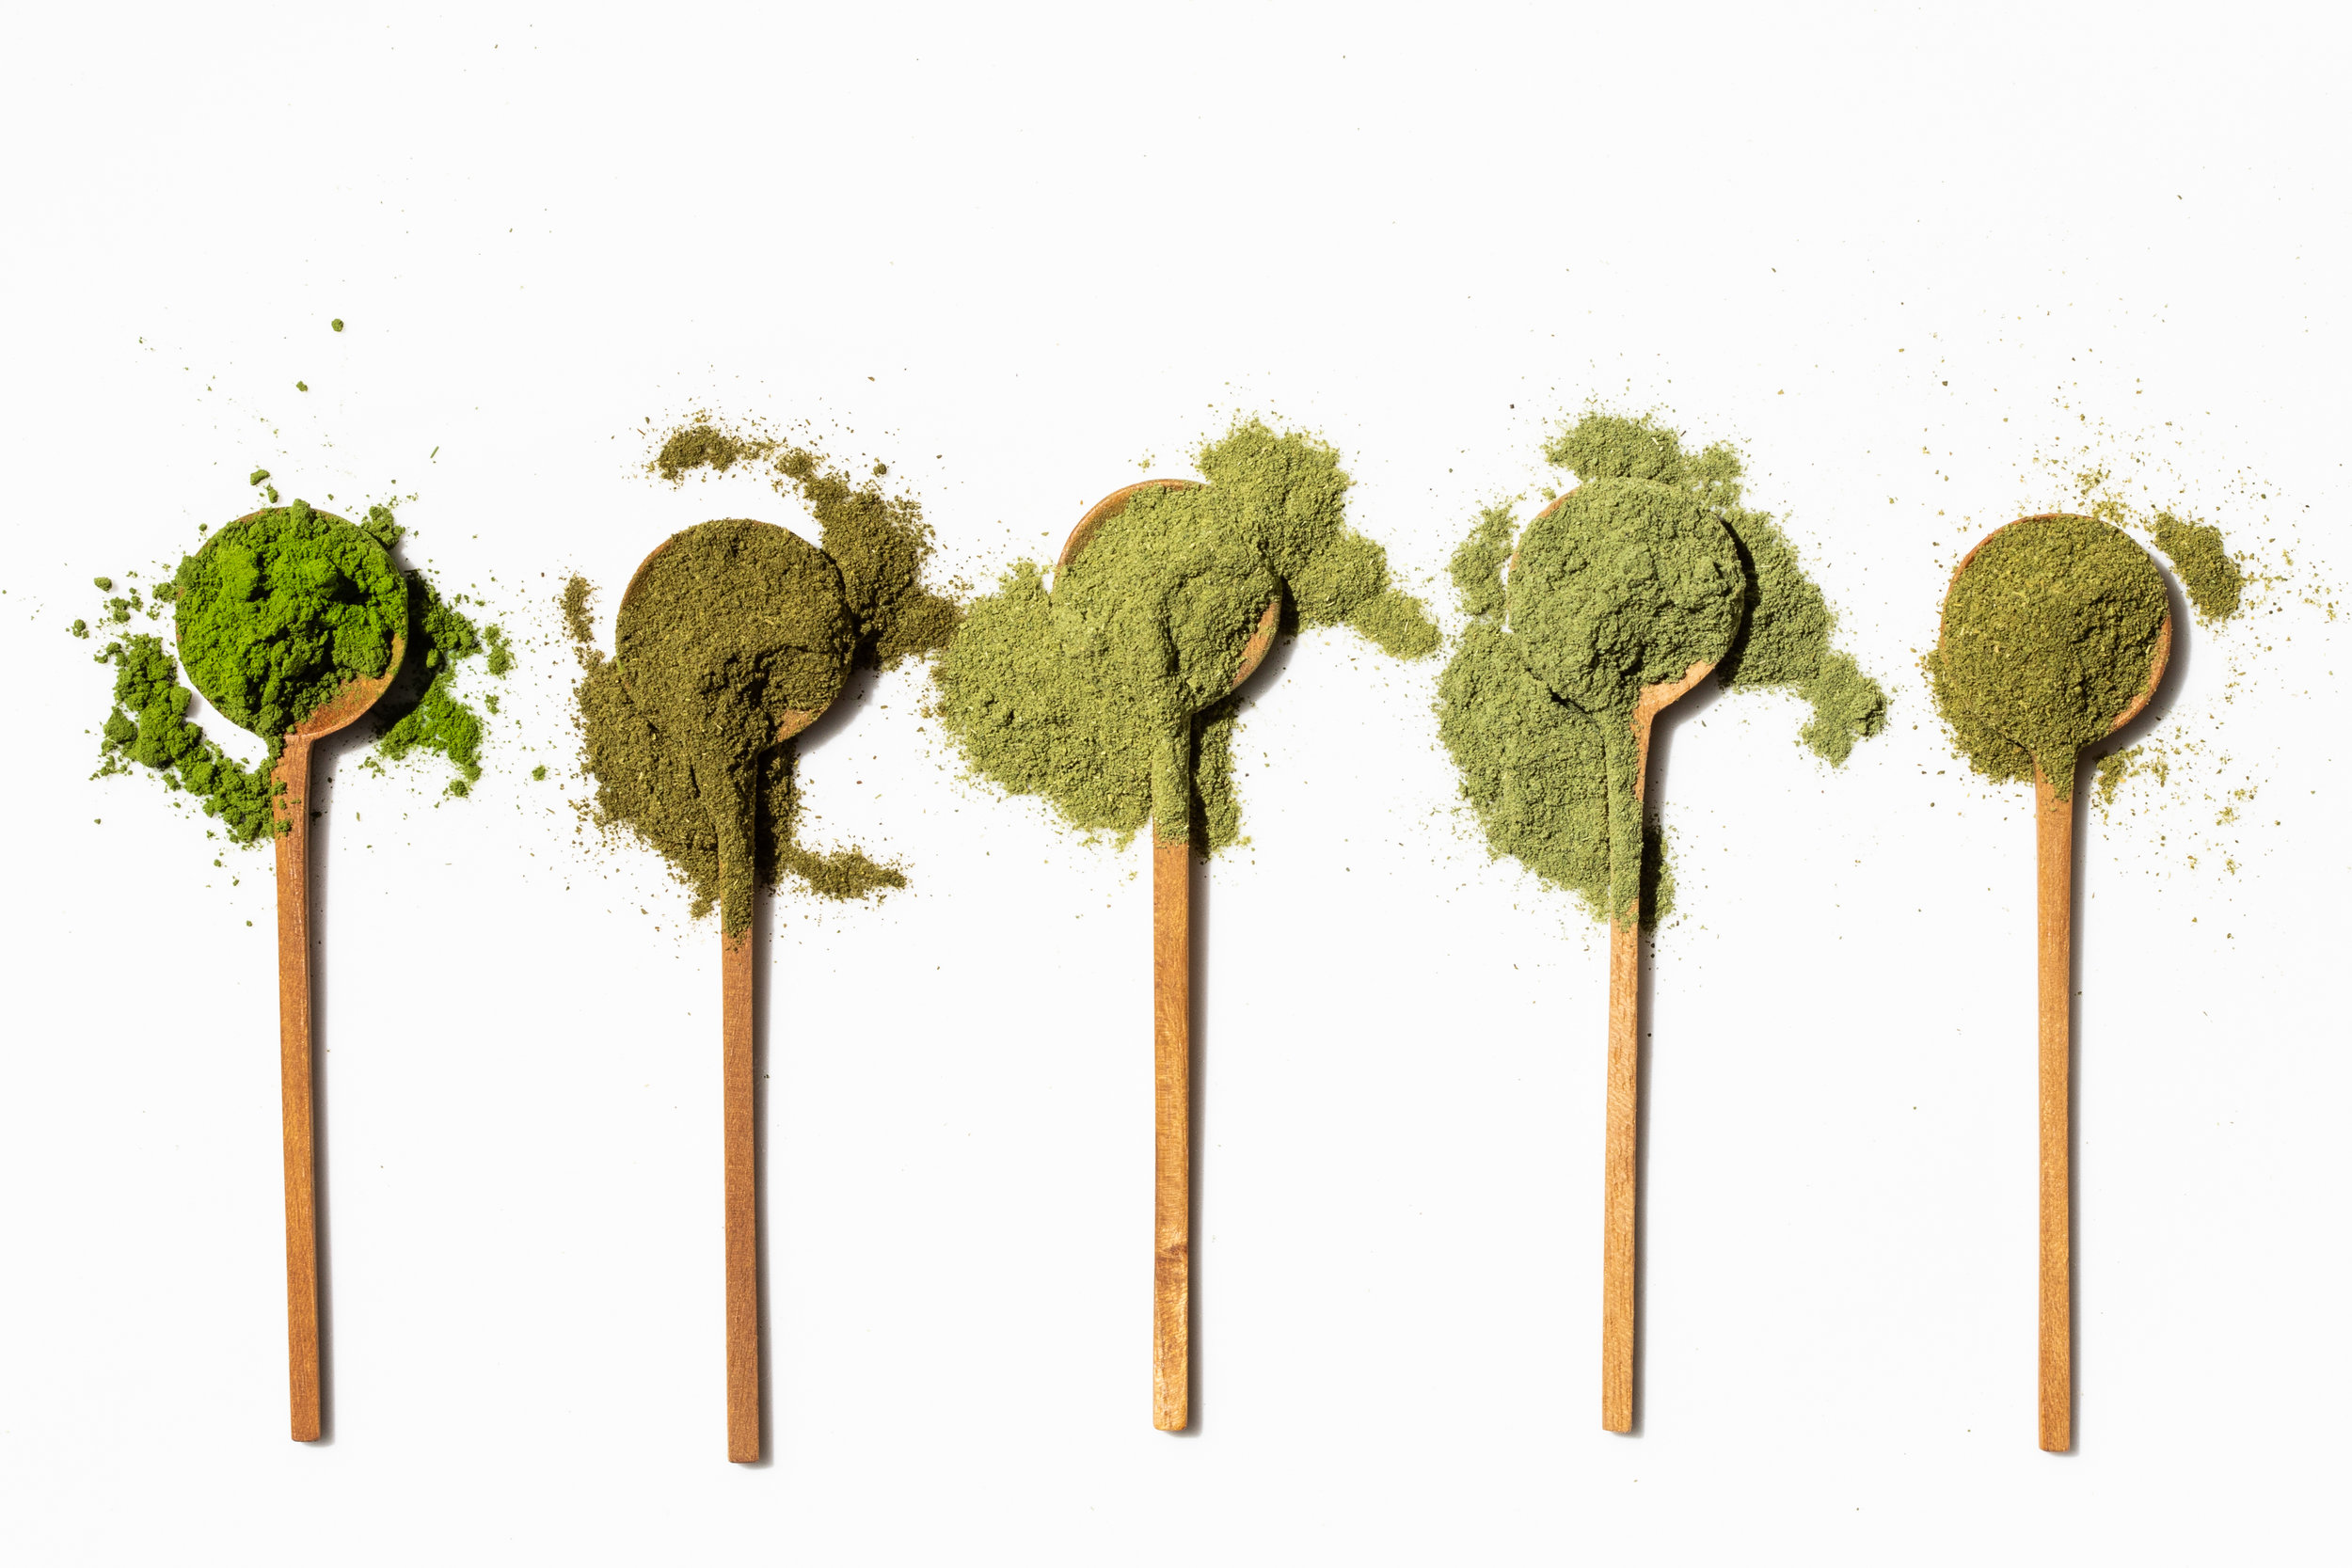 Not all moringa is created equal! Nutu moringa is on the left, and its quality is evident even in its appearance: a fine, bright, vibrant green powder, with all the vitality of the raw leaf.